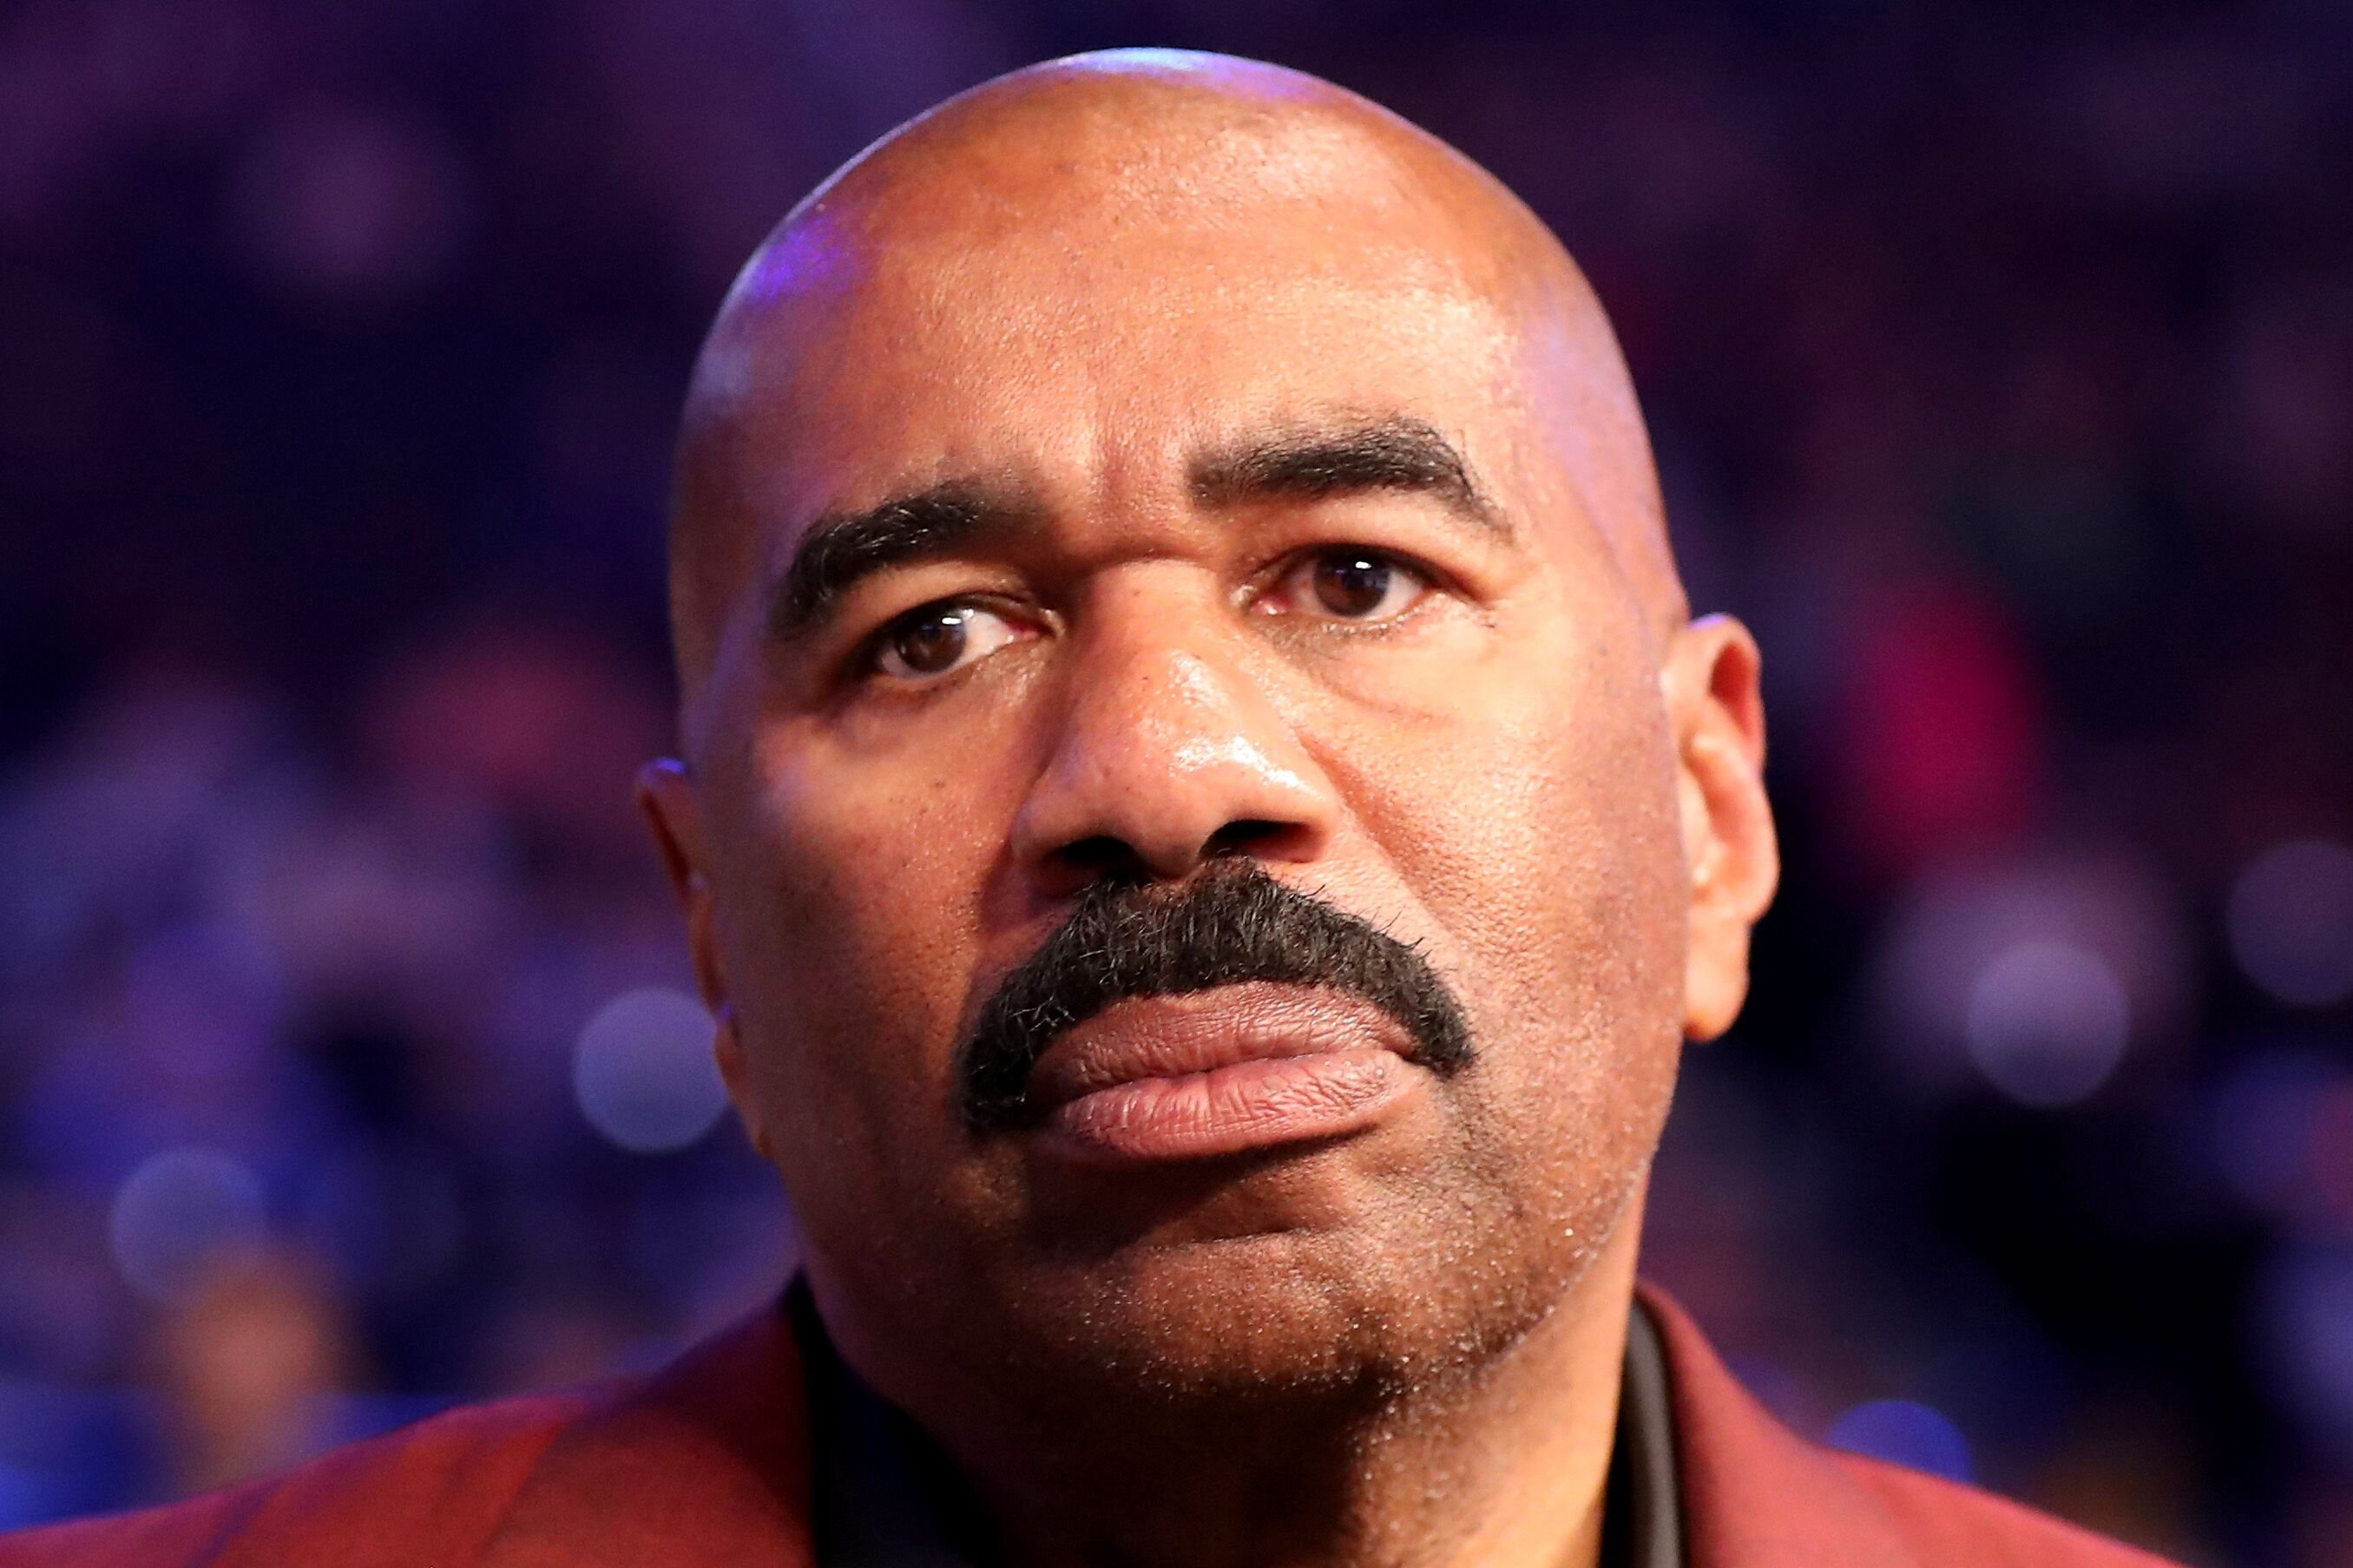 Steve Harvey at the super welterweight boxing match between Floyd Mayweather Jr. and Conor McGregor in Las Vegas in 2017   Source: Getty Images